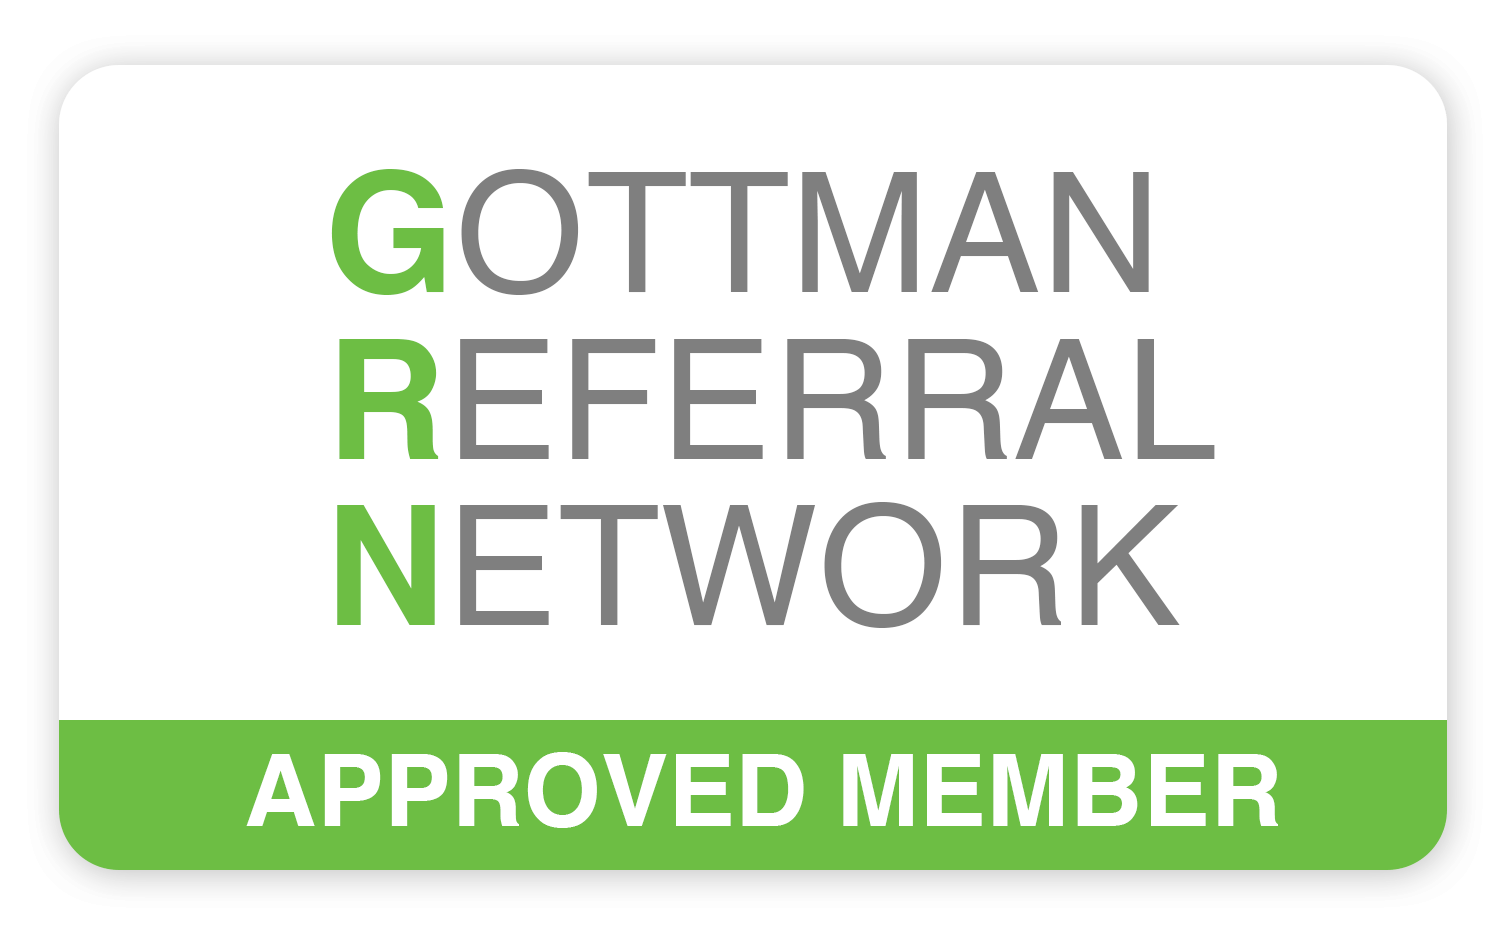 Terry Peacock's profile on the Gottman Referral Network